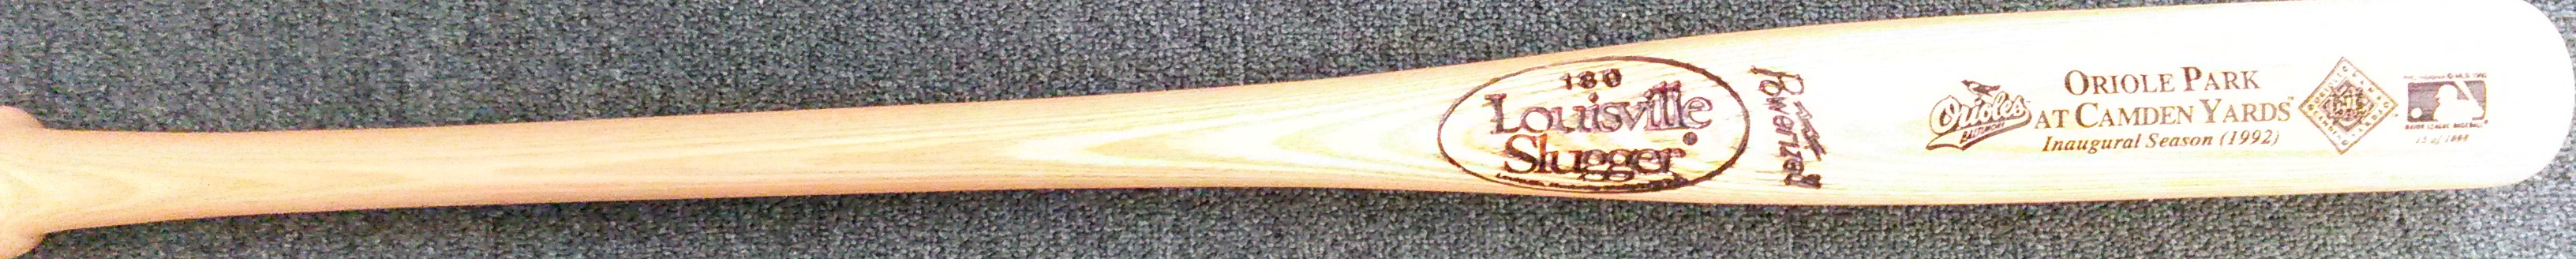 1992 Camden Yards Inaugural Season bat